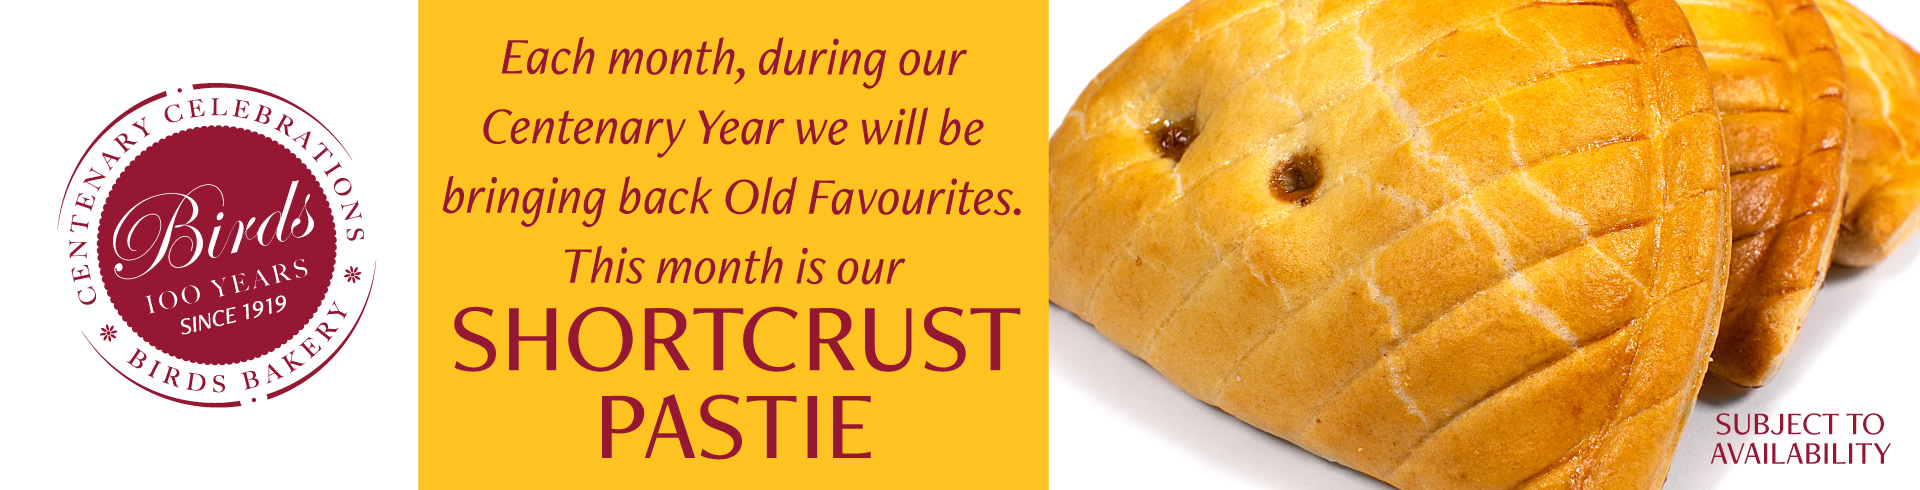 Each month, during our Centenary Year we will be bringing back Old Favourites. This month is our Shortcrust Pastie